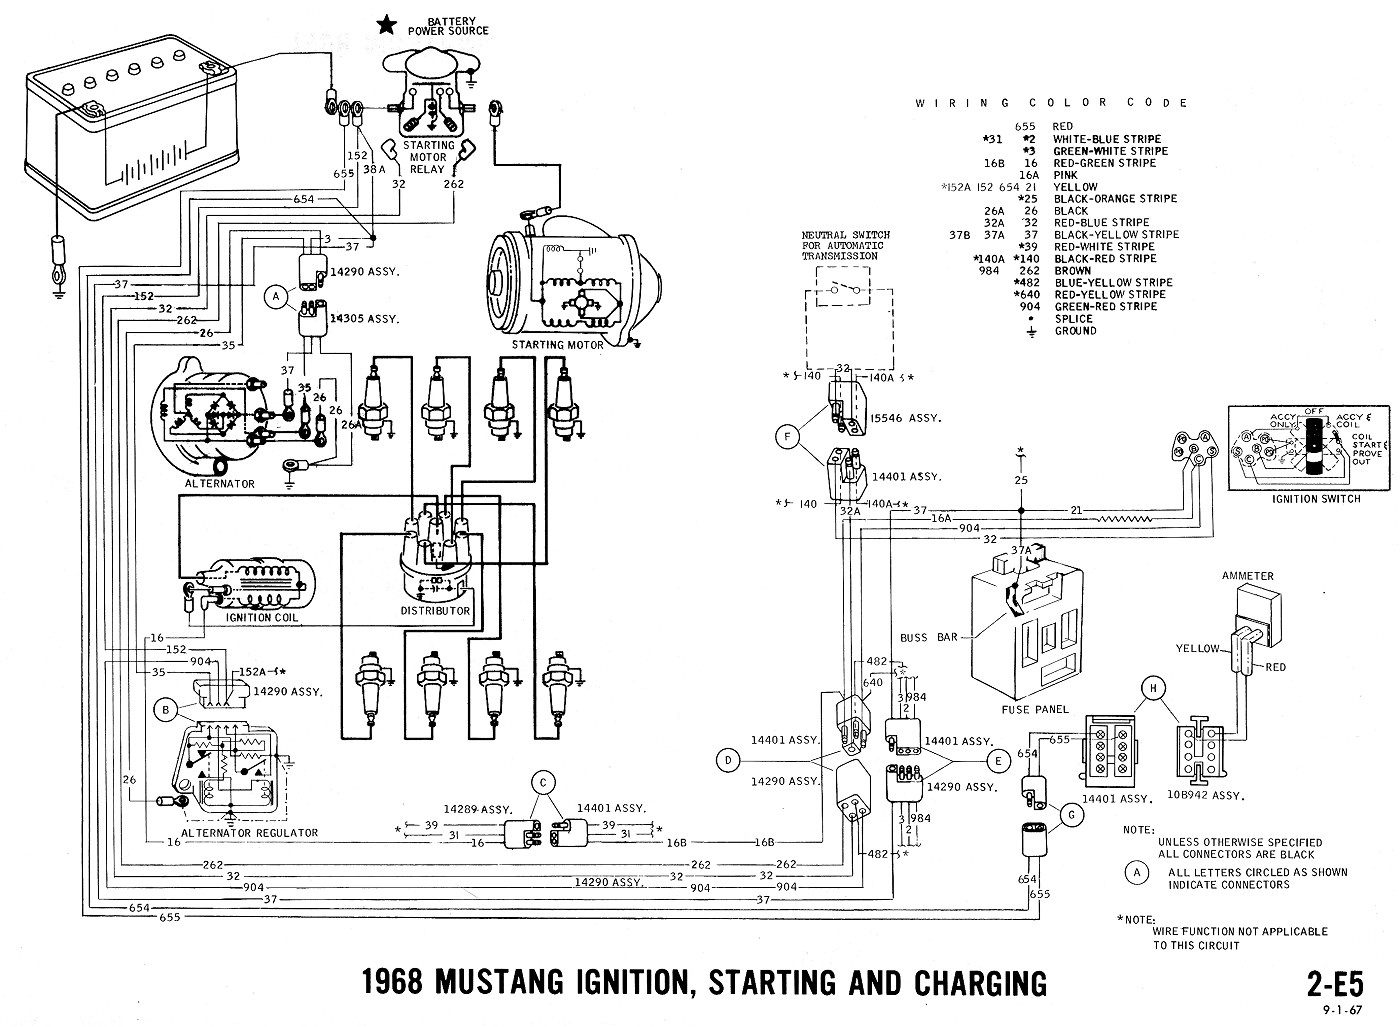 1965 Mustang Distributor Wiring Diagram Schematic Diagrams 1964 F100 1966 Ford Data Heater